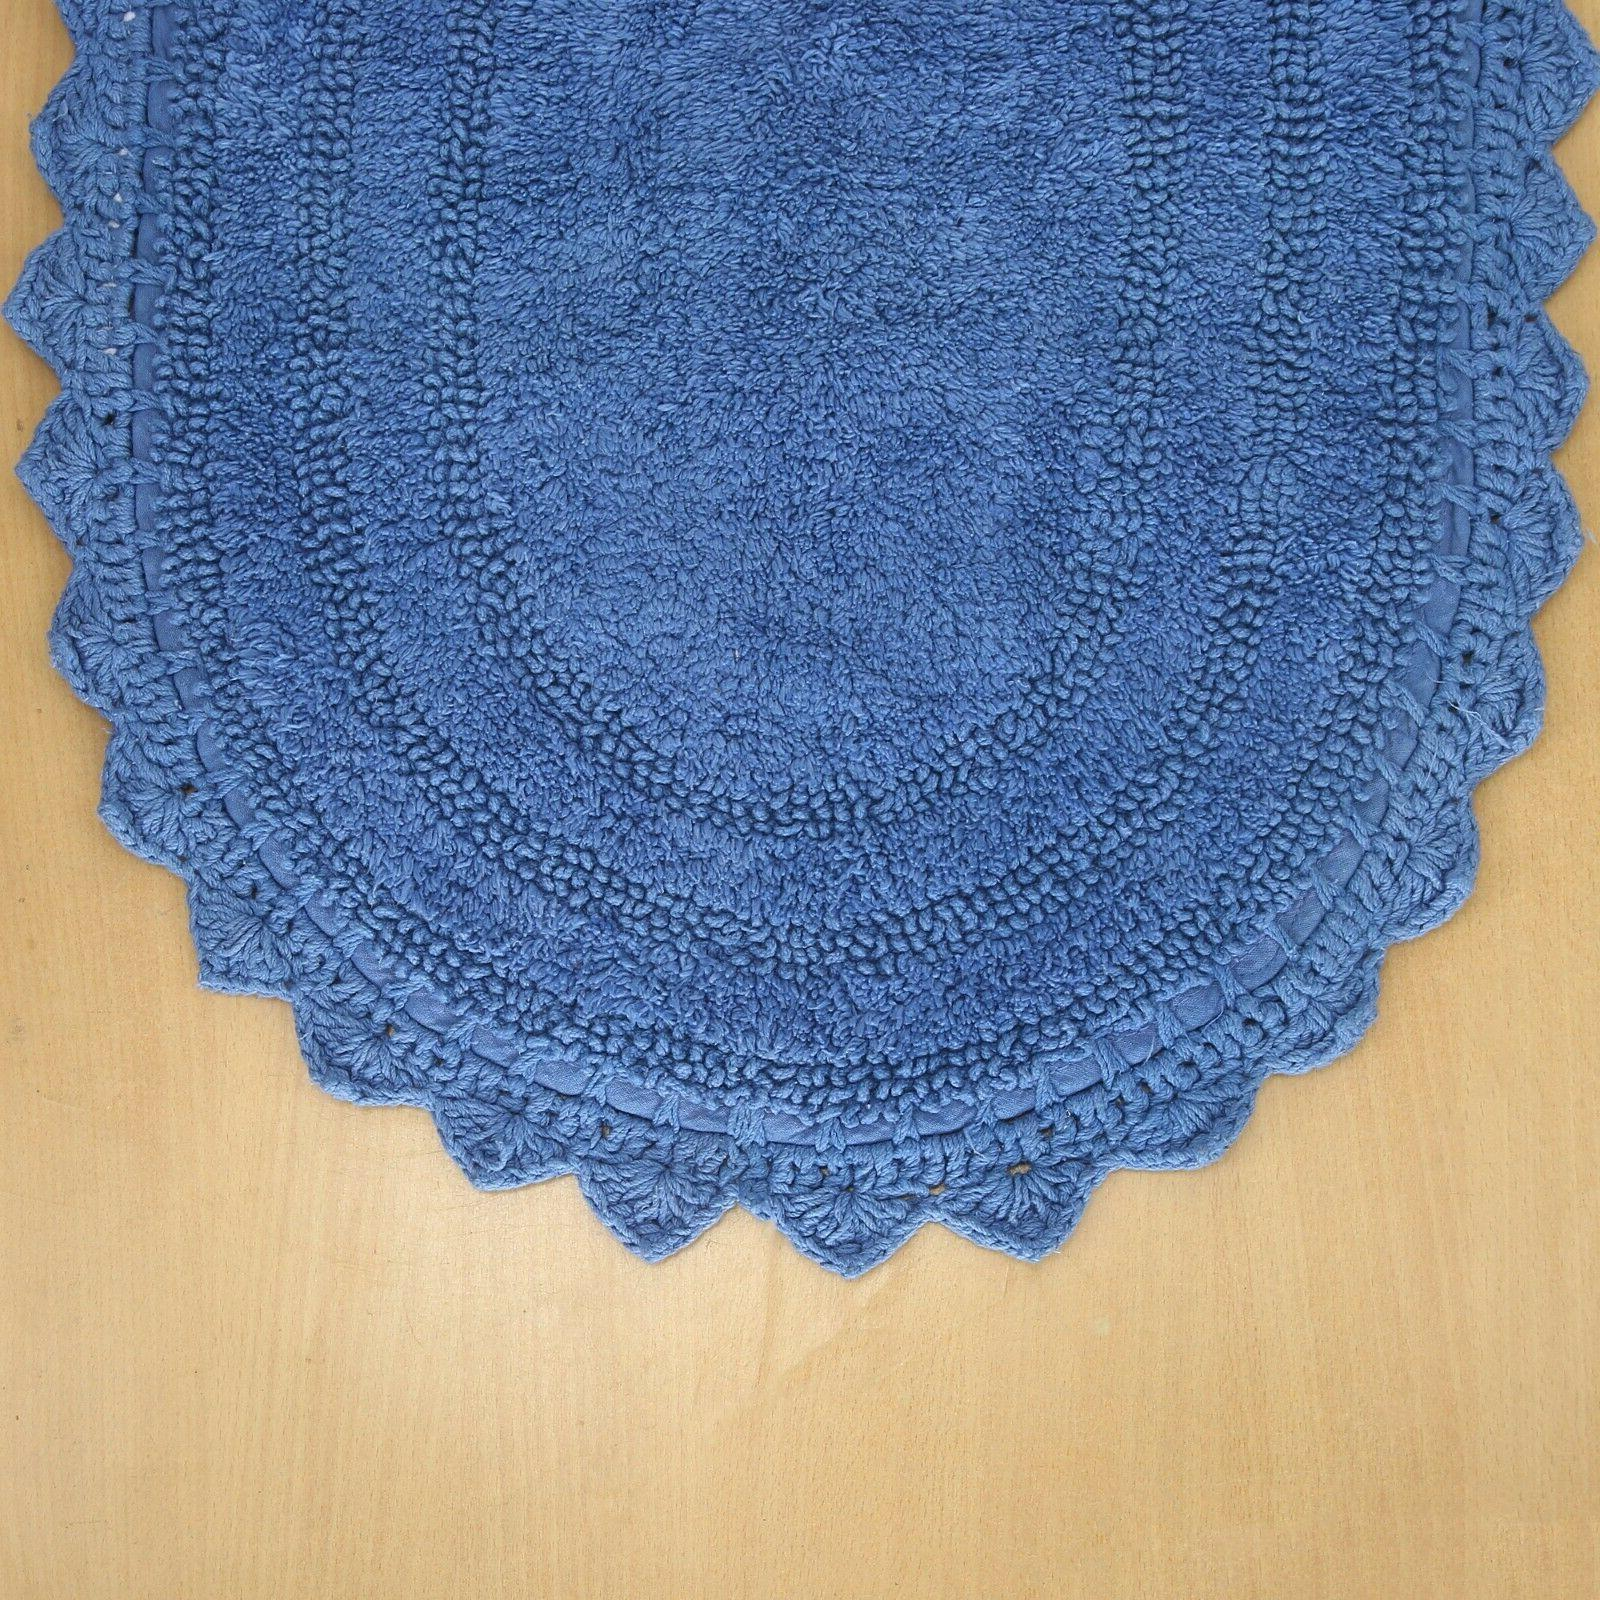 Cotton Mat Rug 17X24 Shape Shaggy Front Ocean Blue